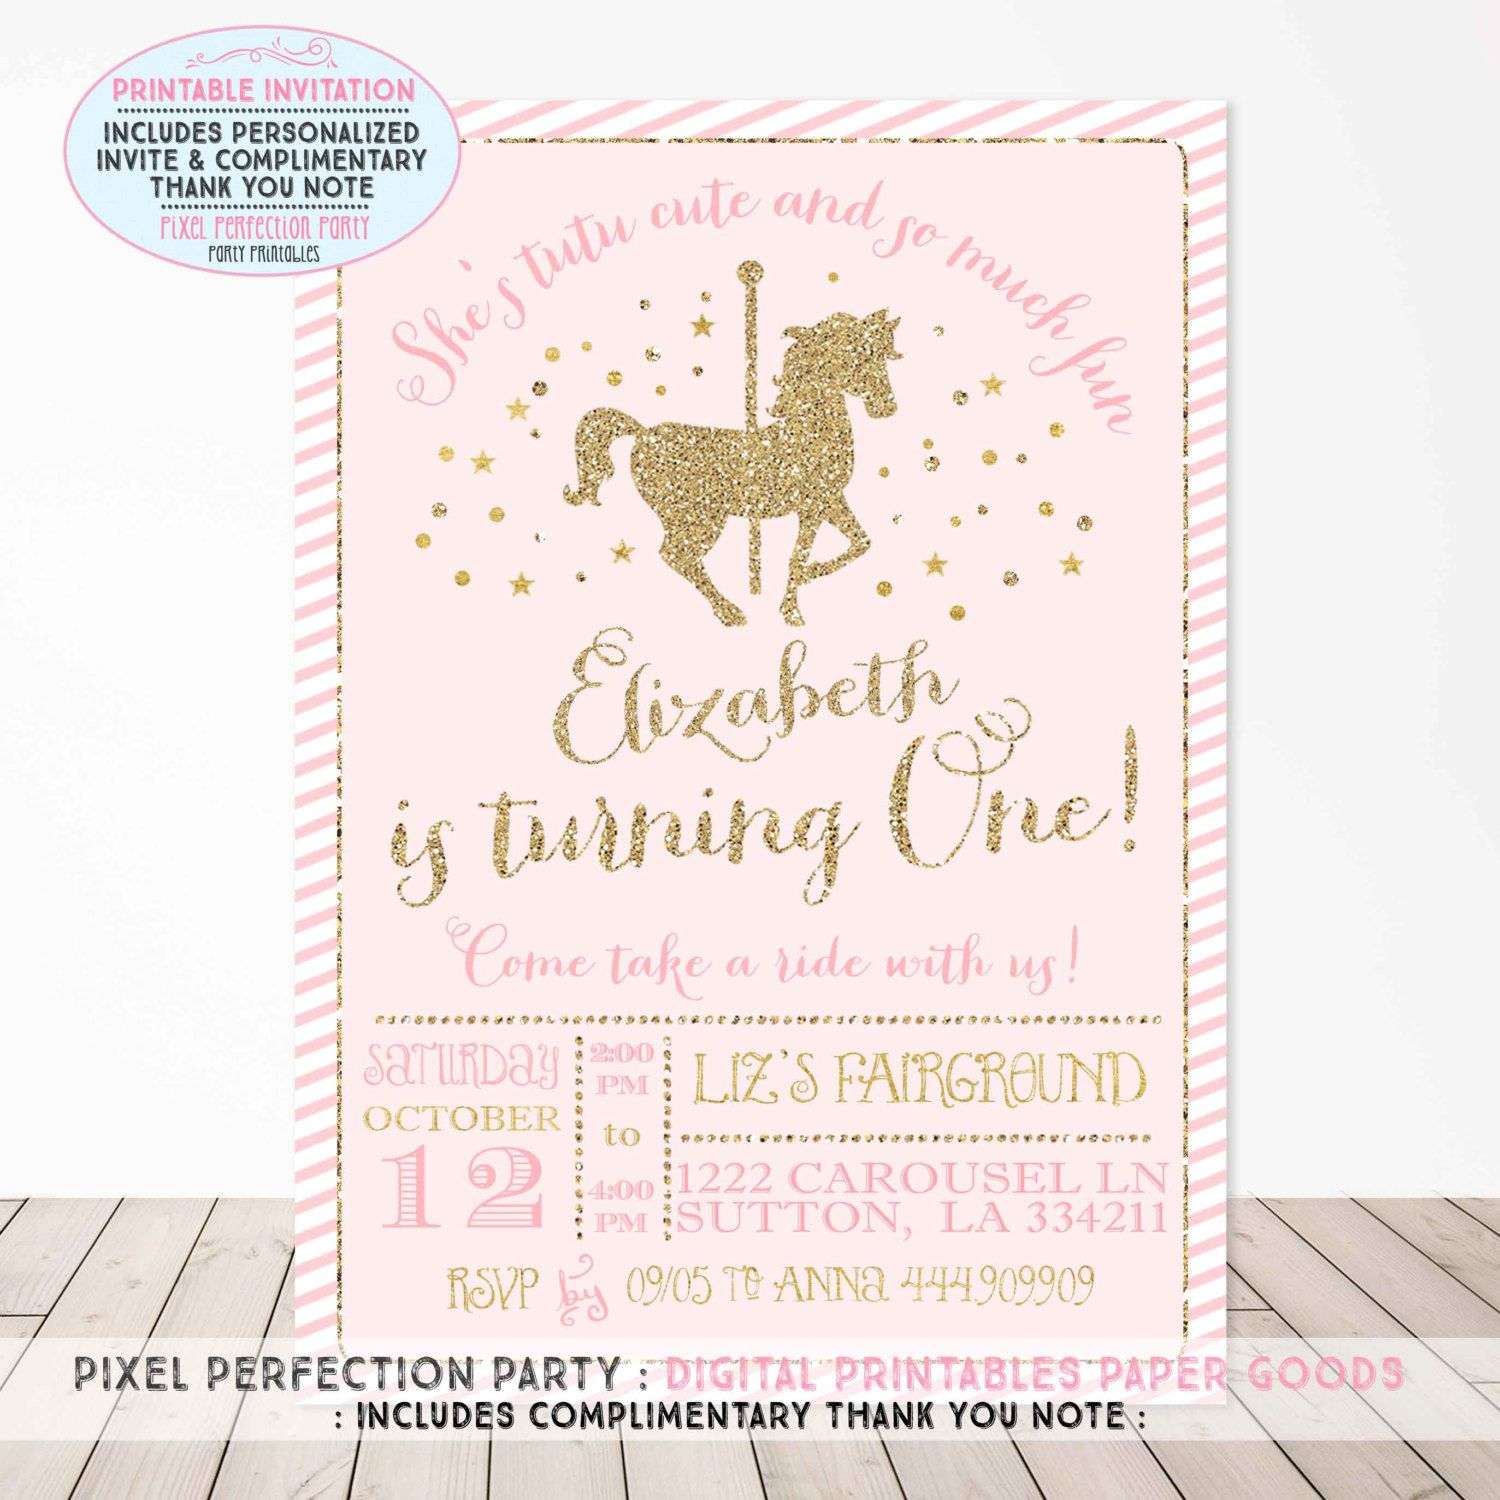 Carousel Birthday Invitation Carousel Party Invite Pink and Gold